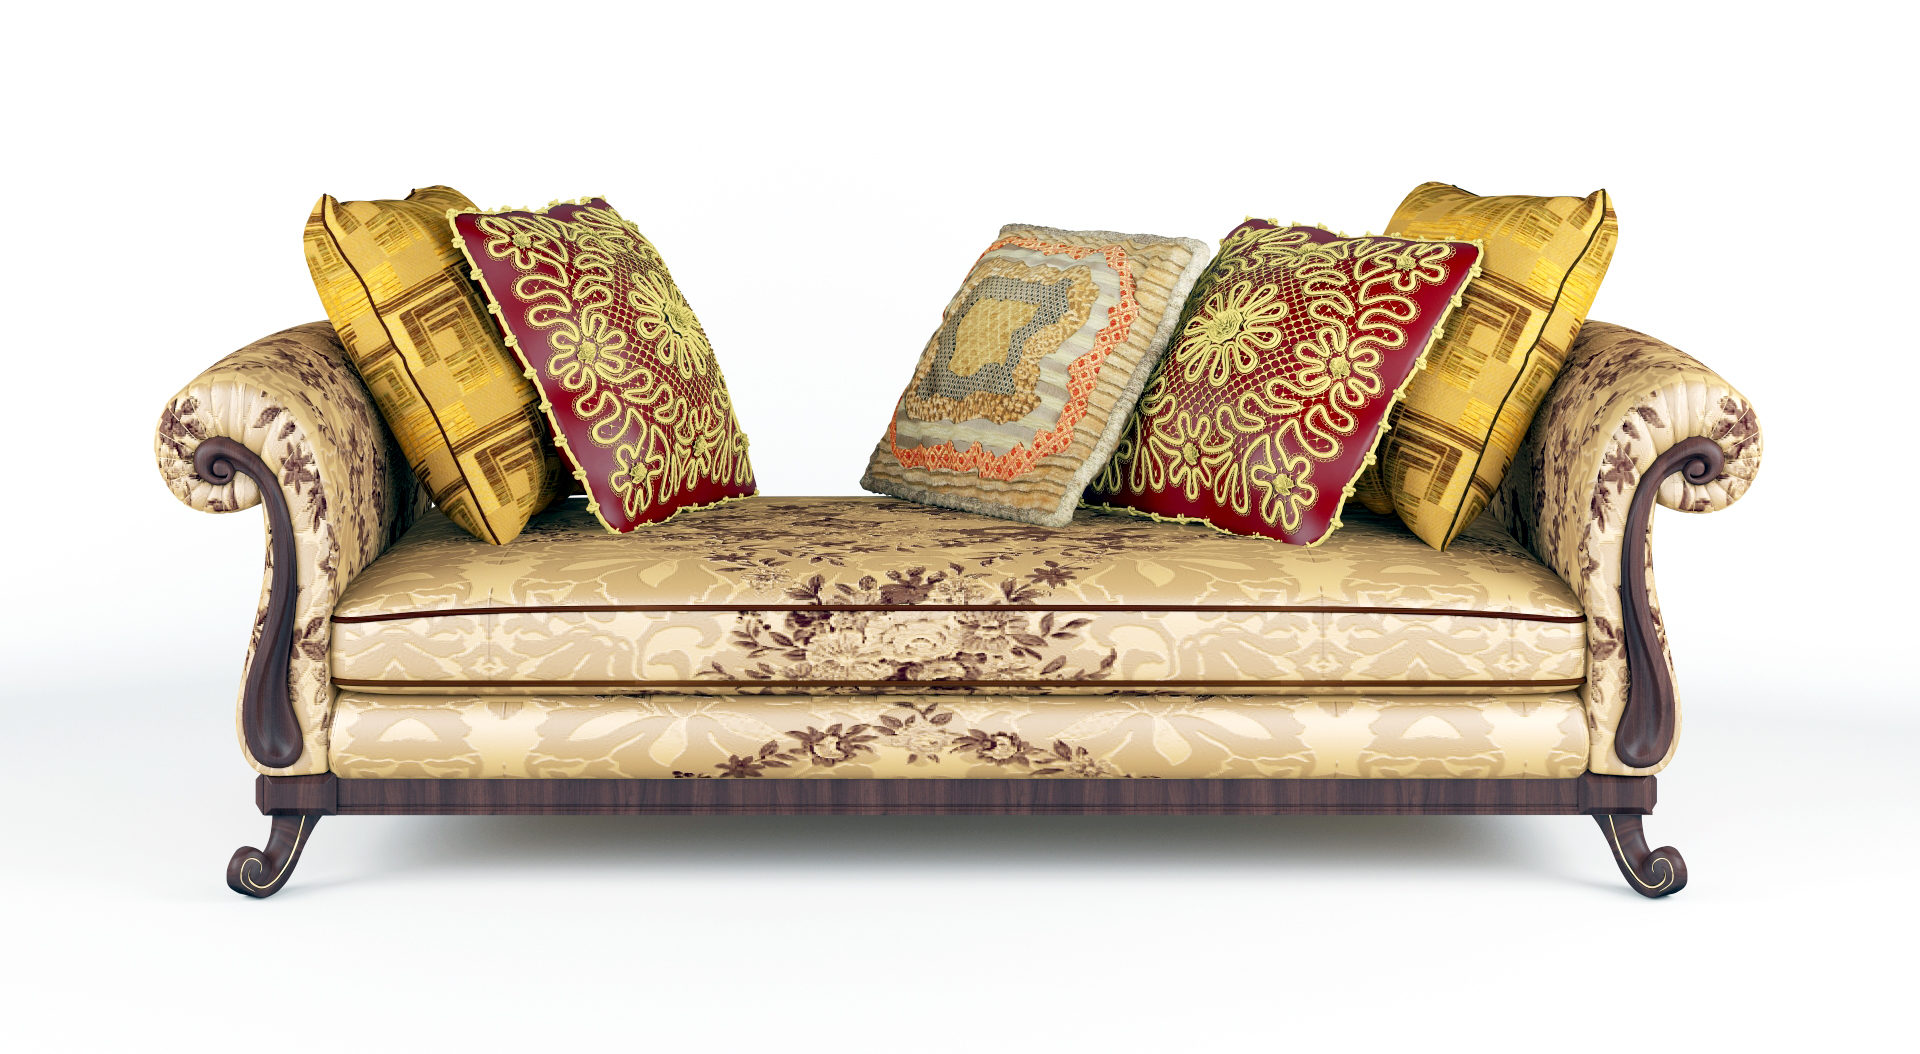 royal sofa with pillows 3d model max fbx ma mb obj 286255